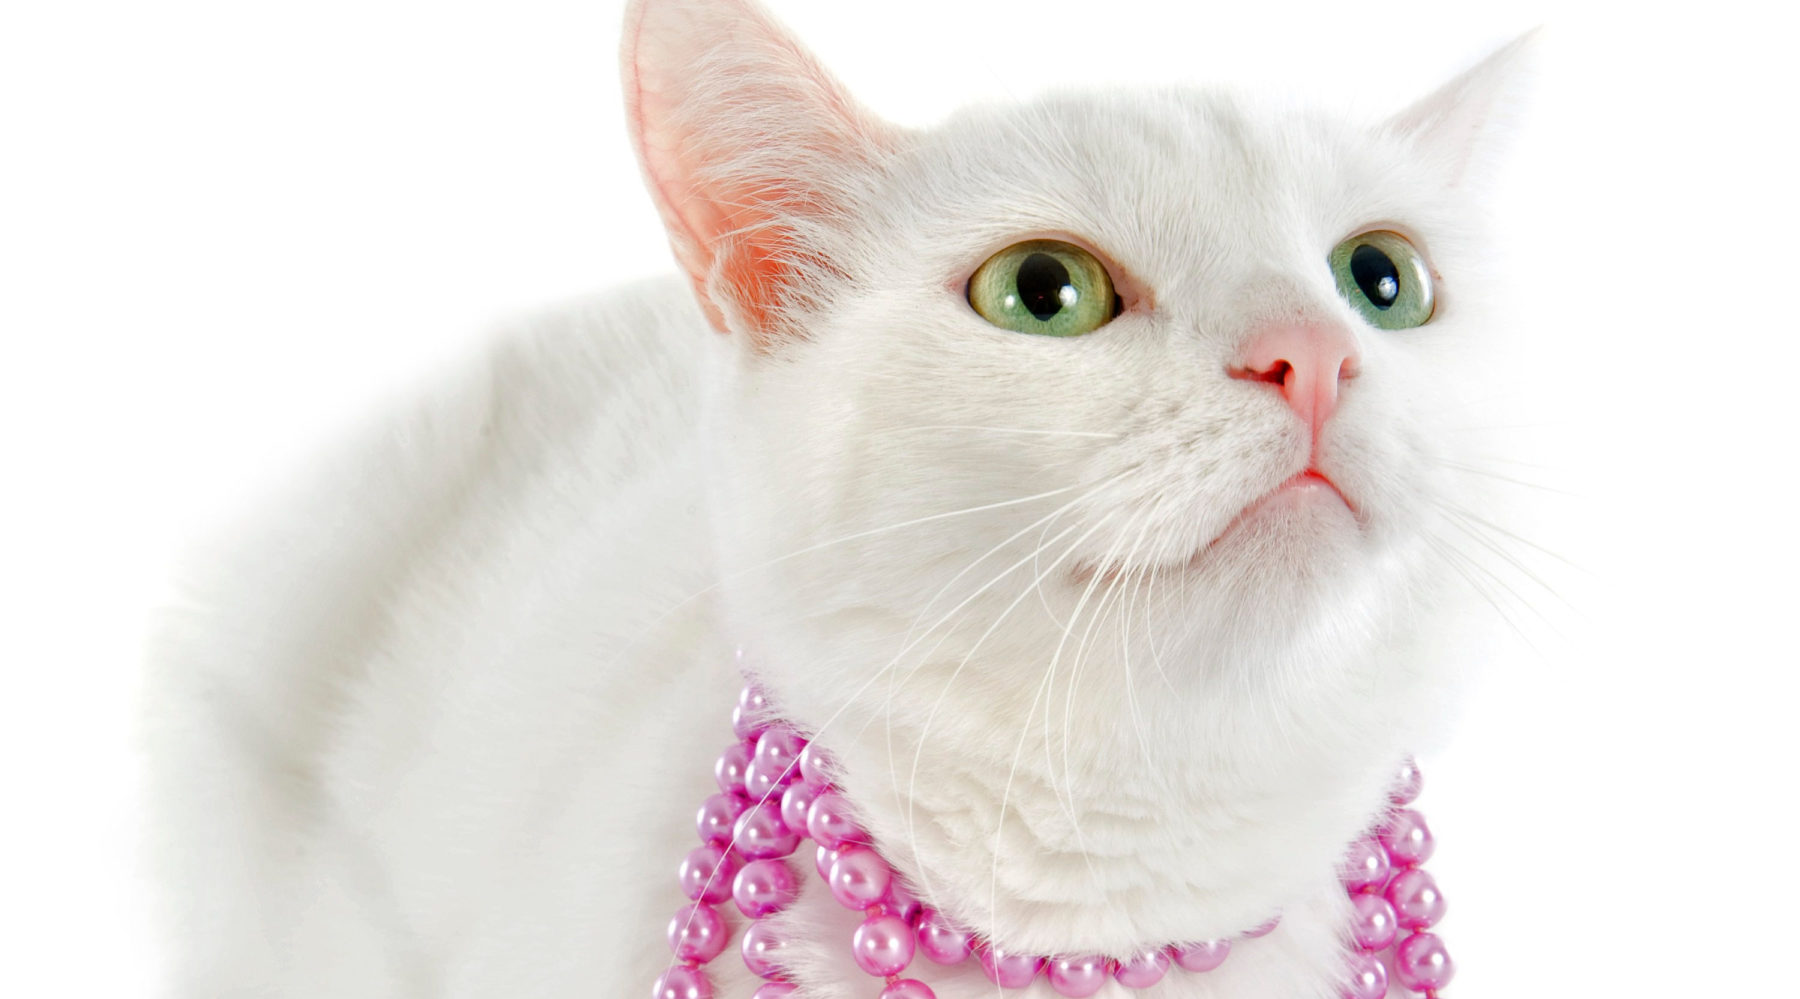 a cat wearing a necklace